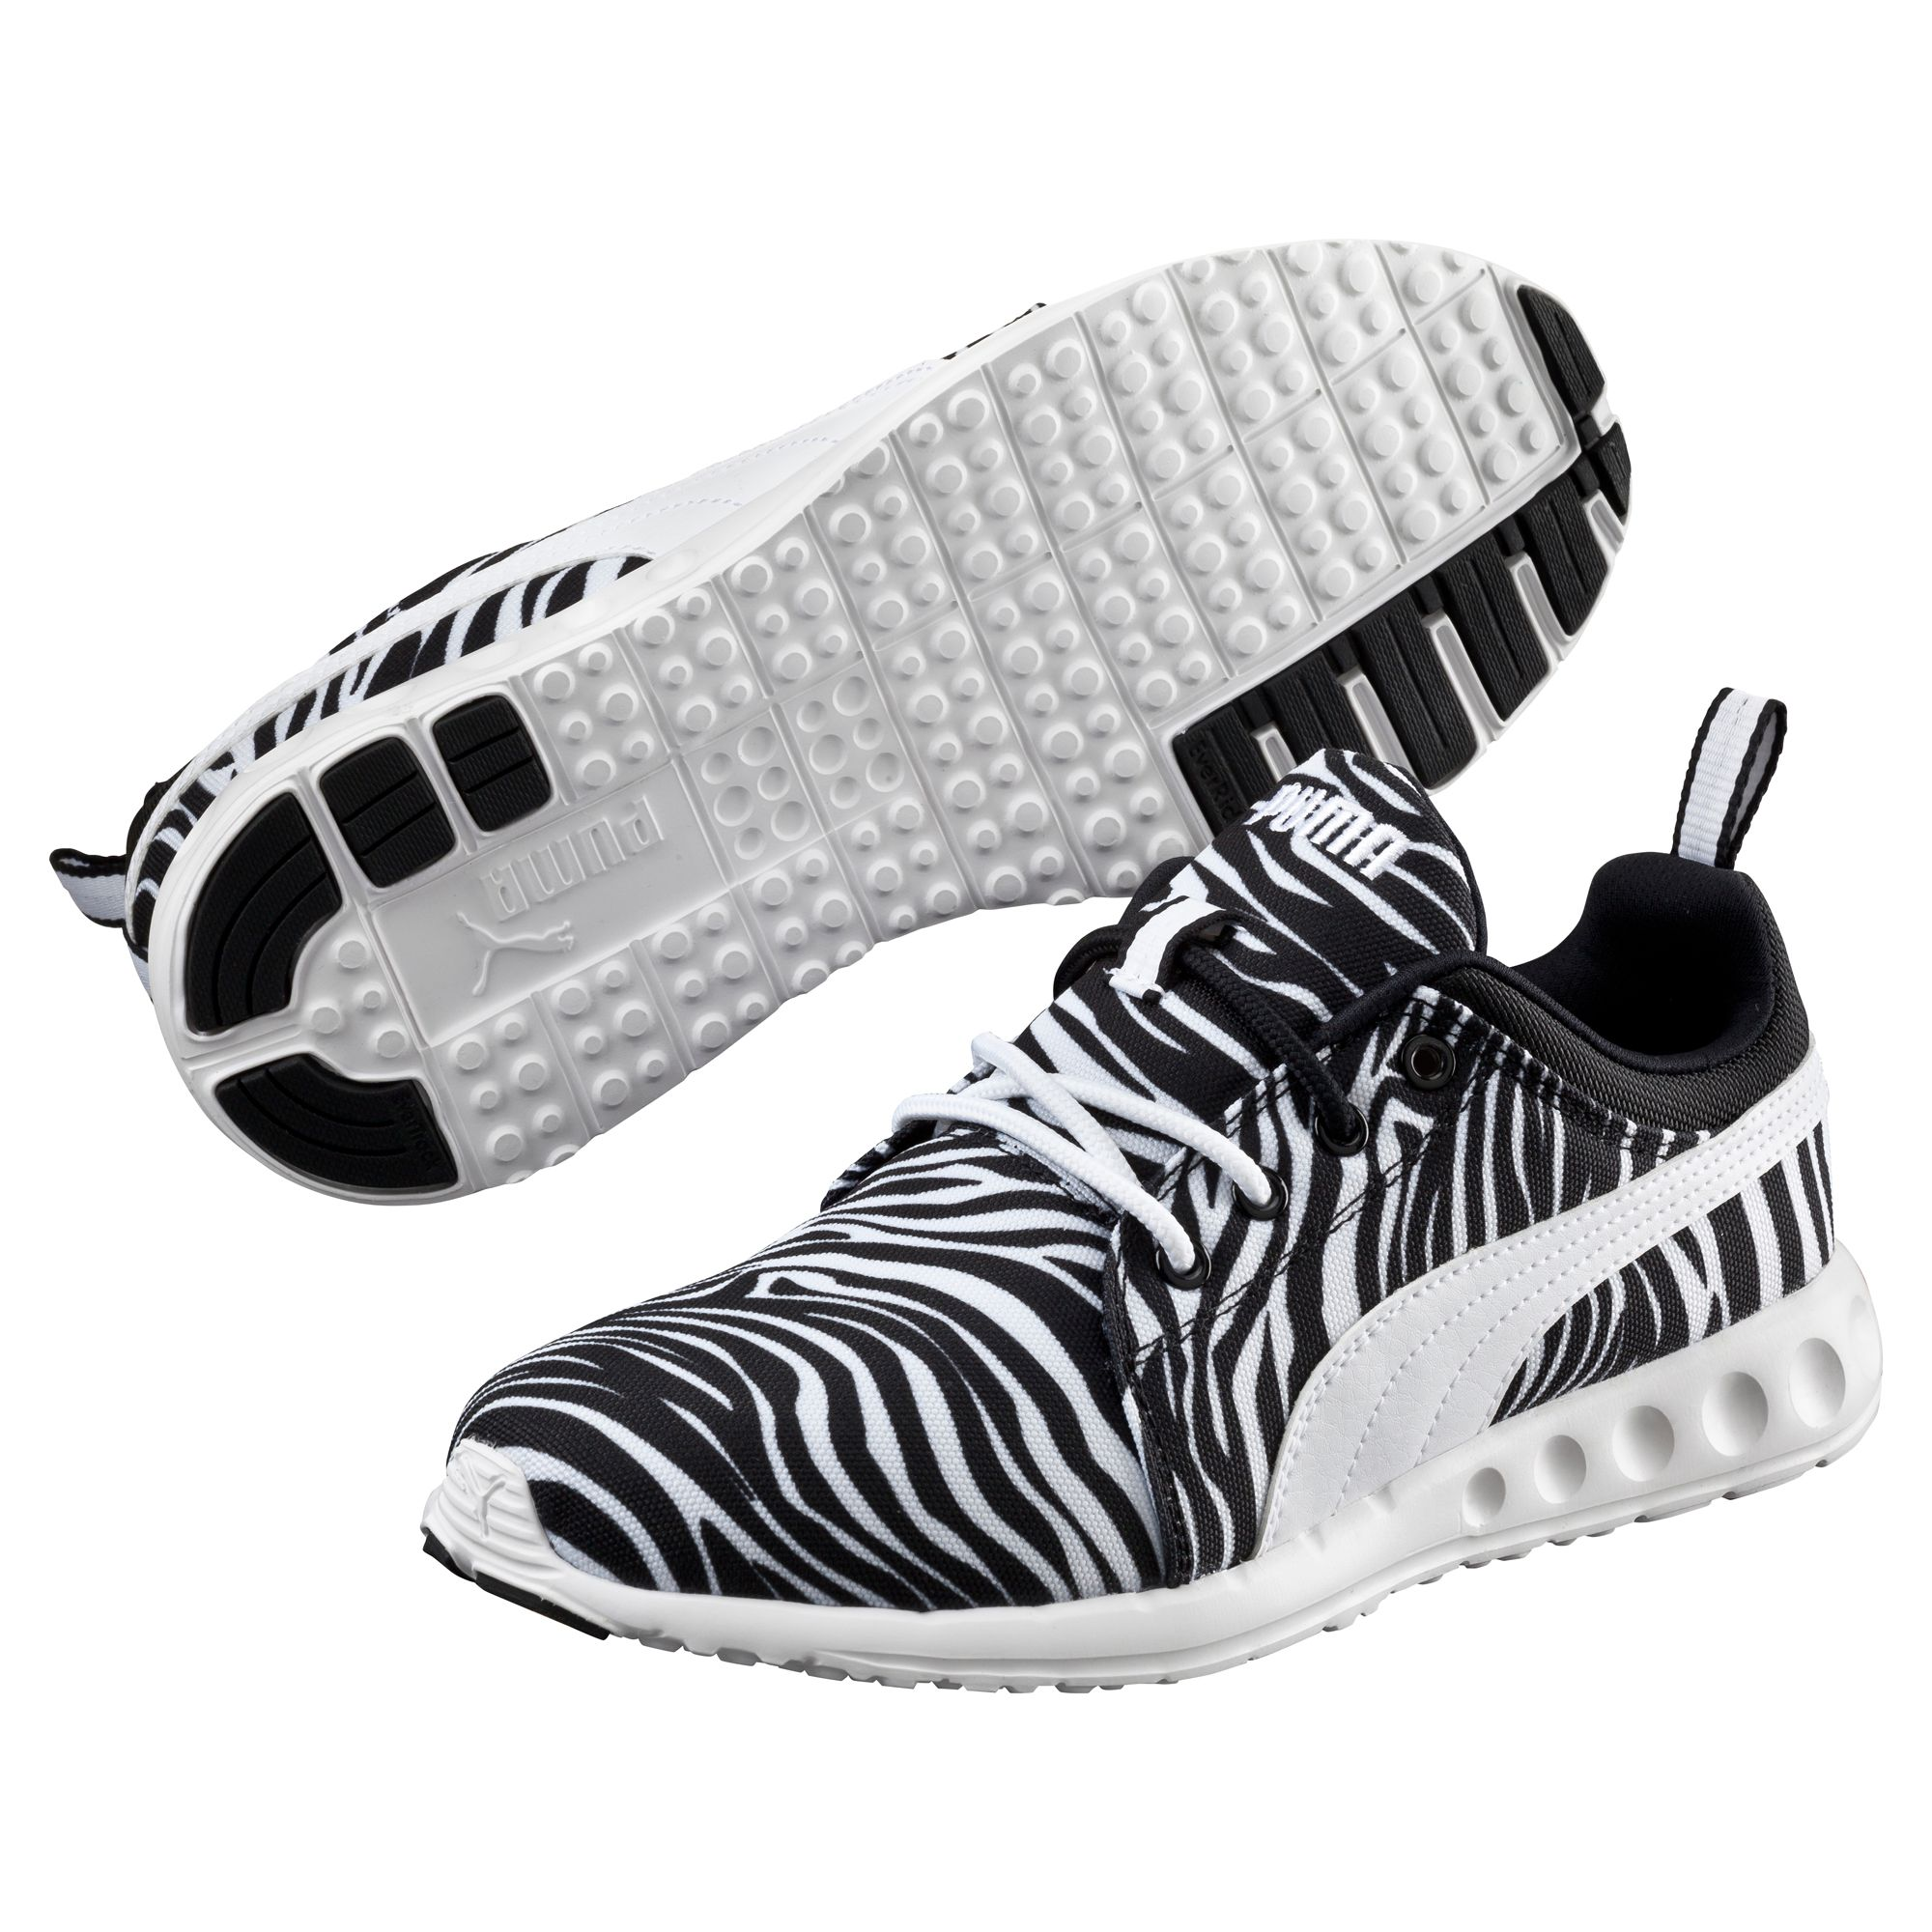 puma carson runner zebra damen laufschuhe laufen schuhe. Black Bedroom Furniture Sets. Home Design Ideas